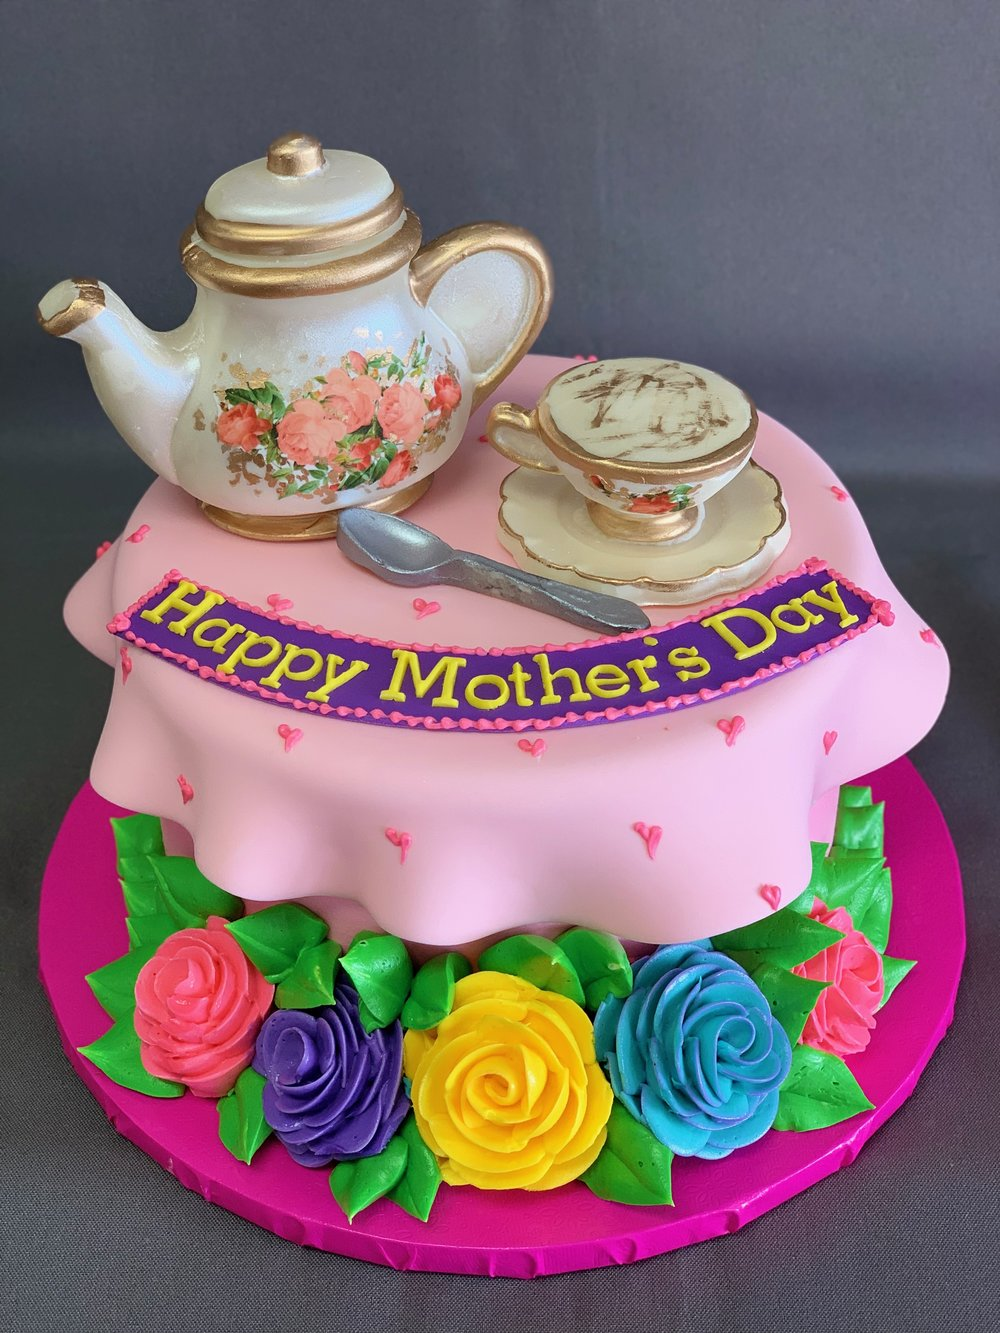 Best Mother's Day Cake NJ